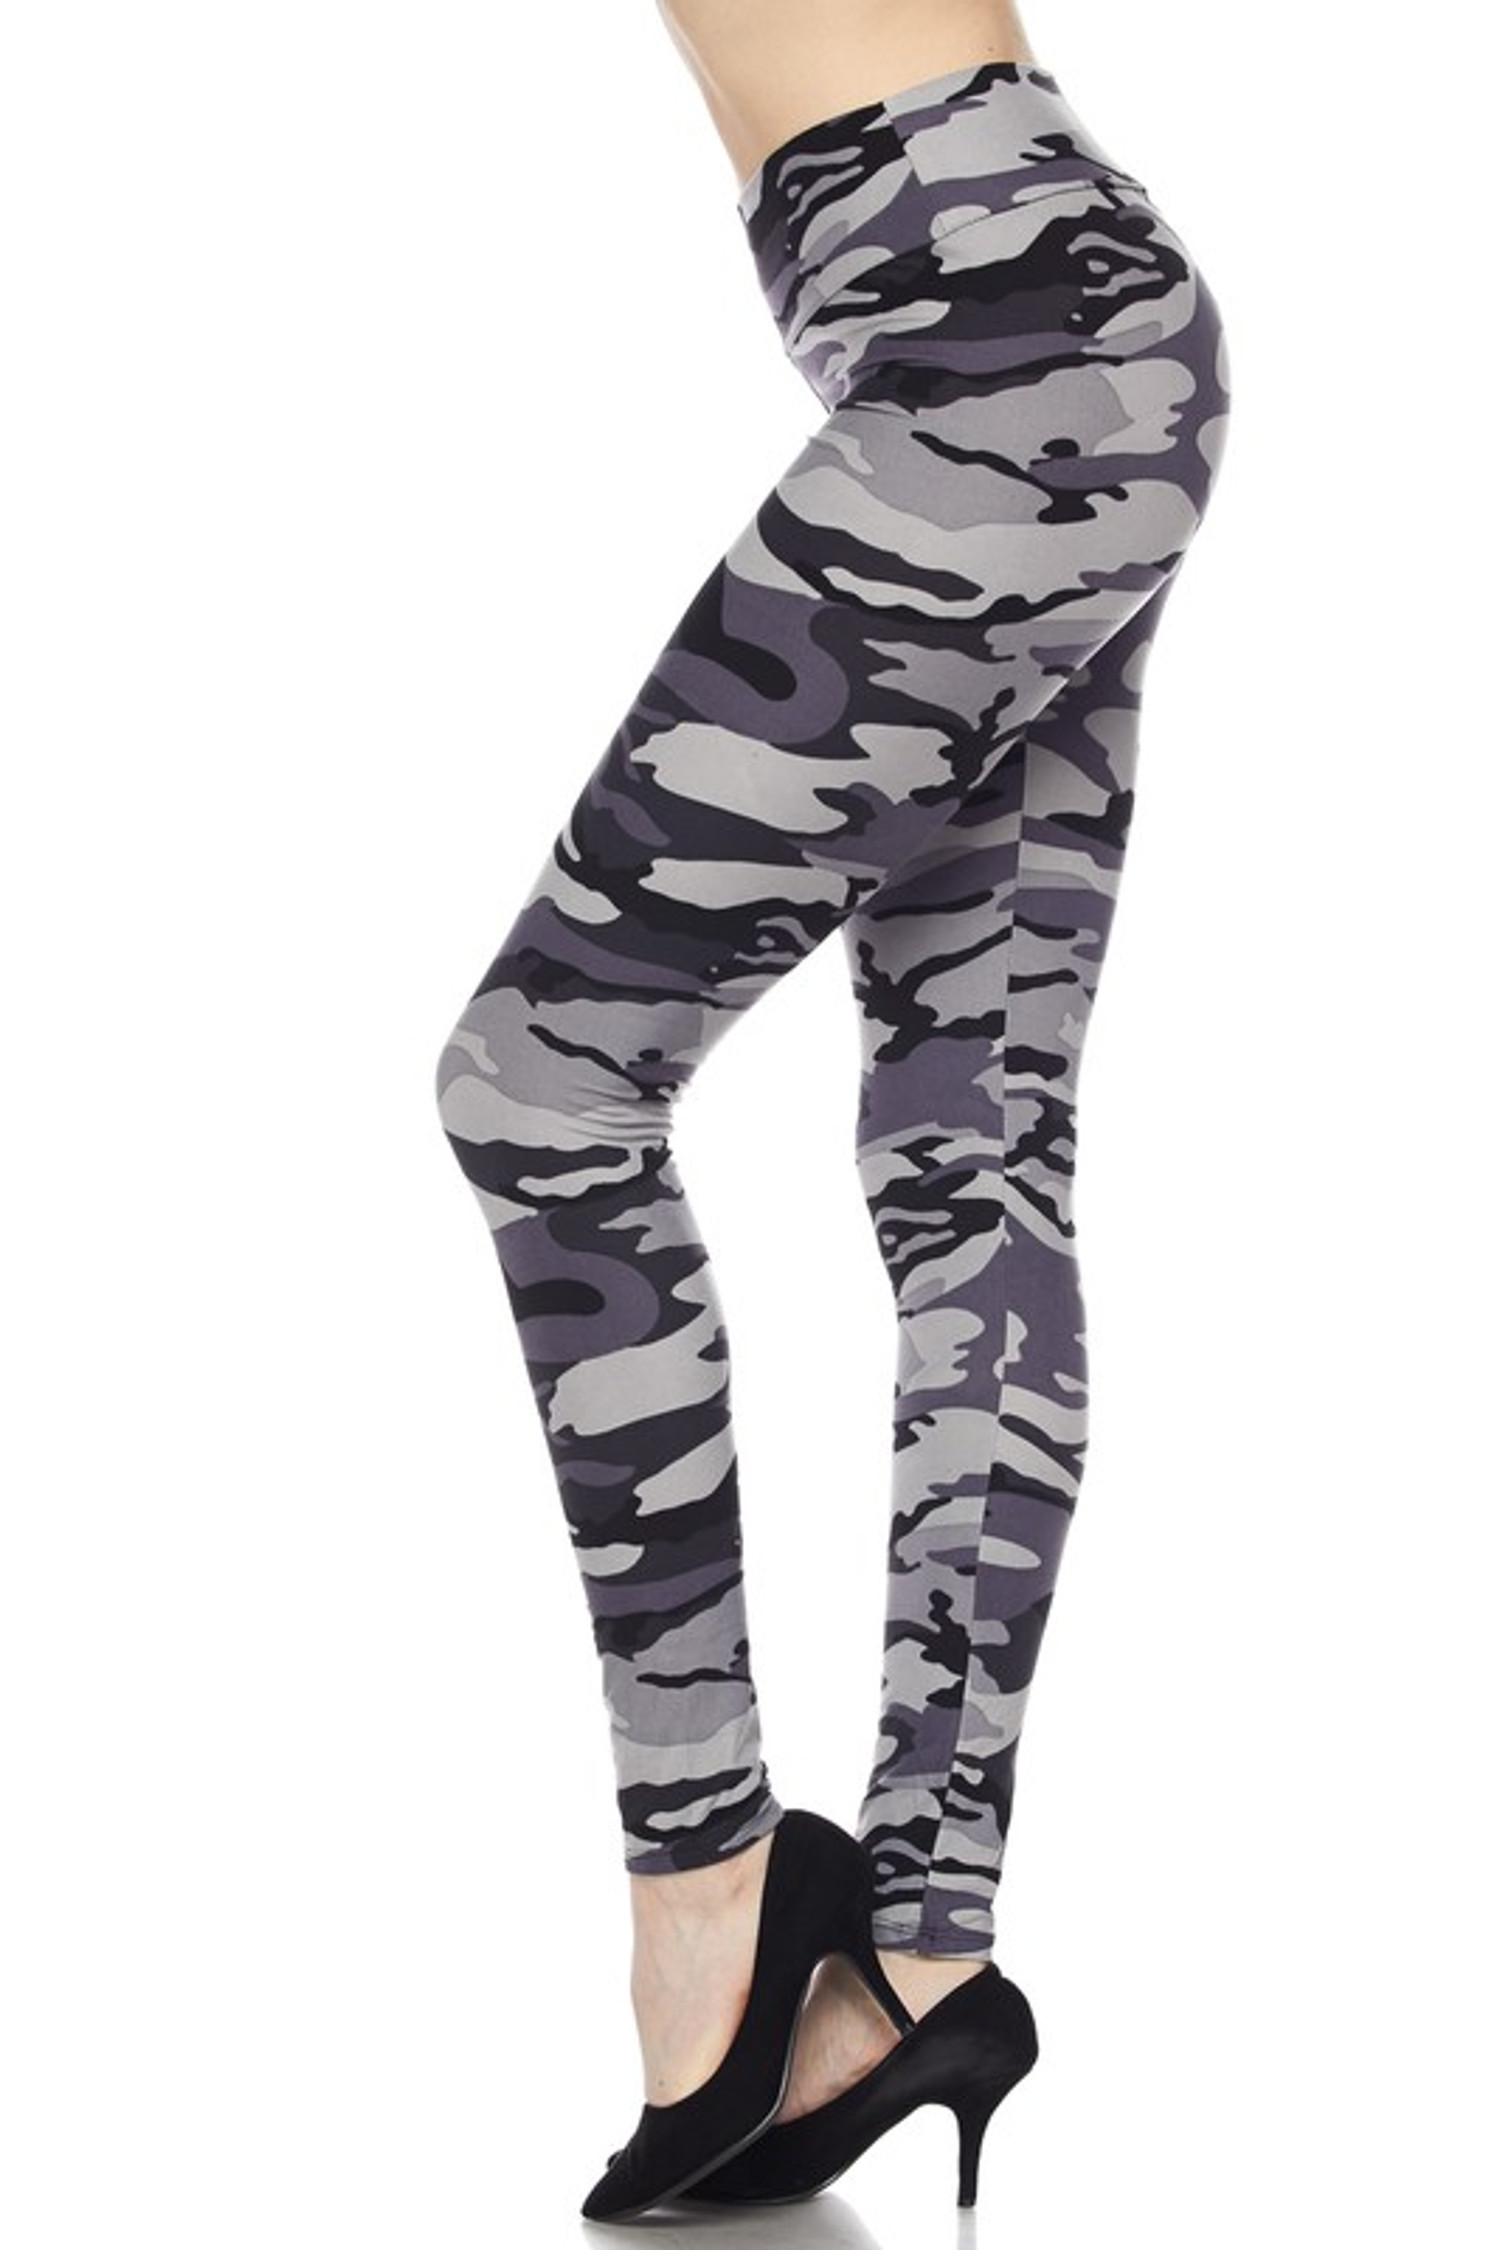 Brushed Charcoal Camouflage High Waist LeggingsBrushed High Waisted Charcoal Camouflage Leggings